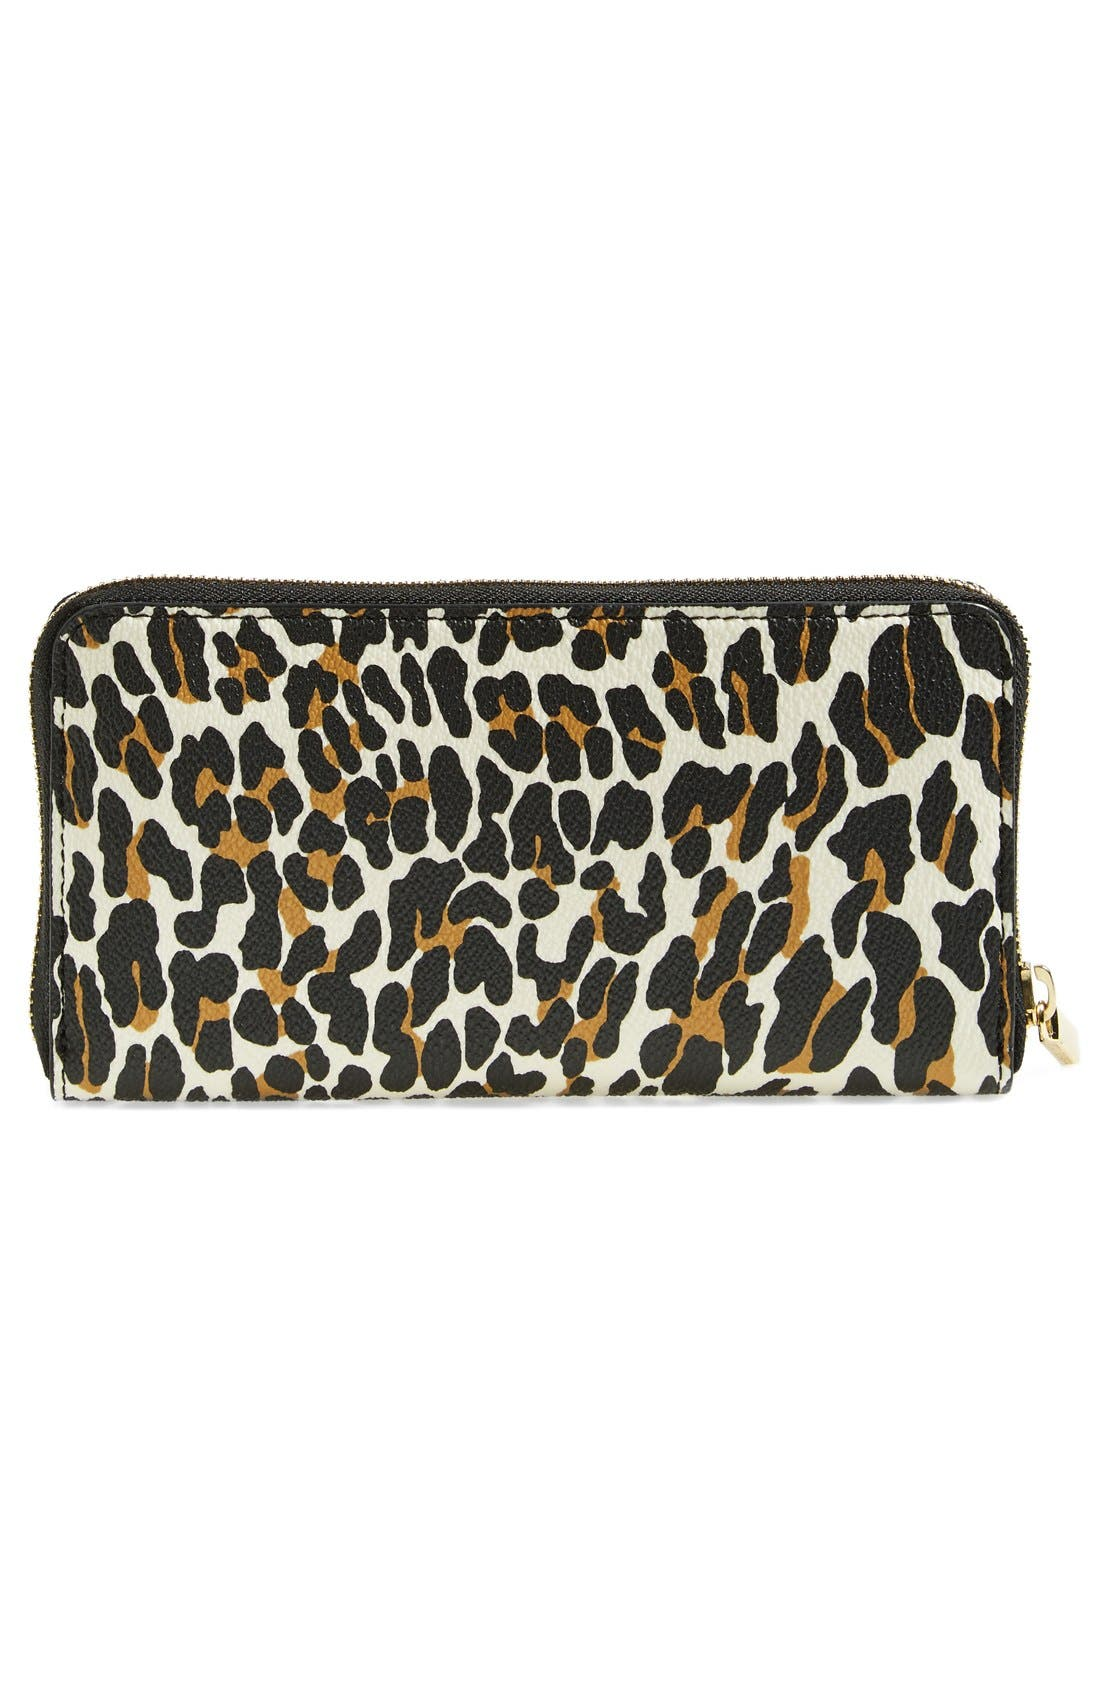 Alternate Image 3  - Tory Burch 'Plaque' Leopard Print Continental Wallet